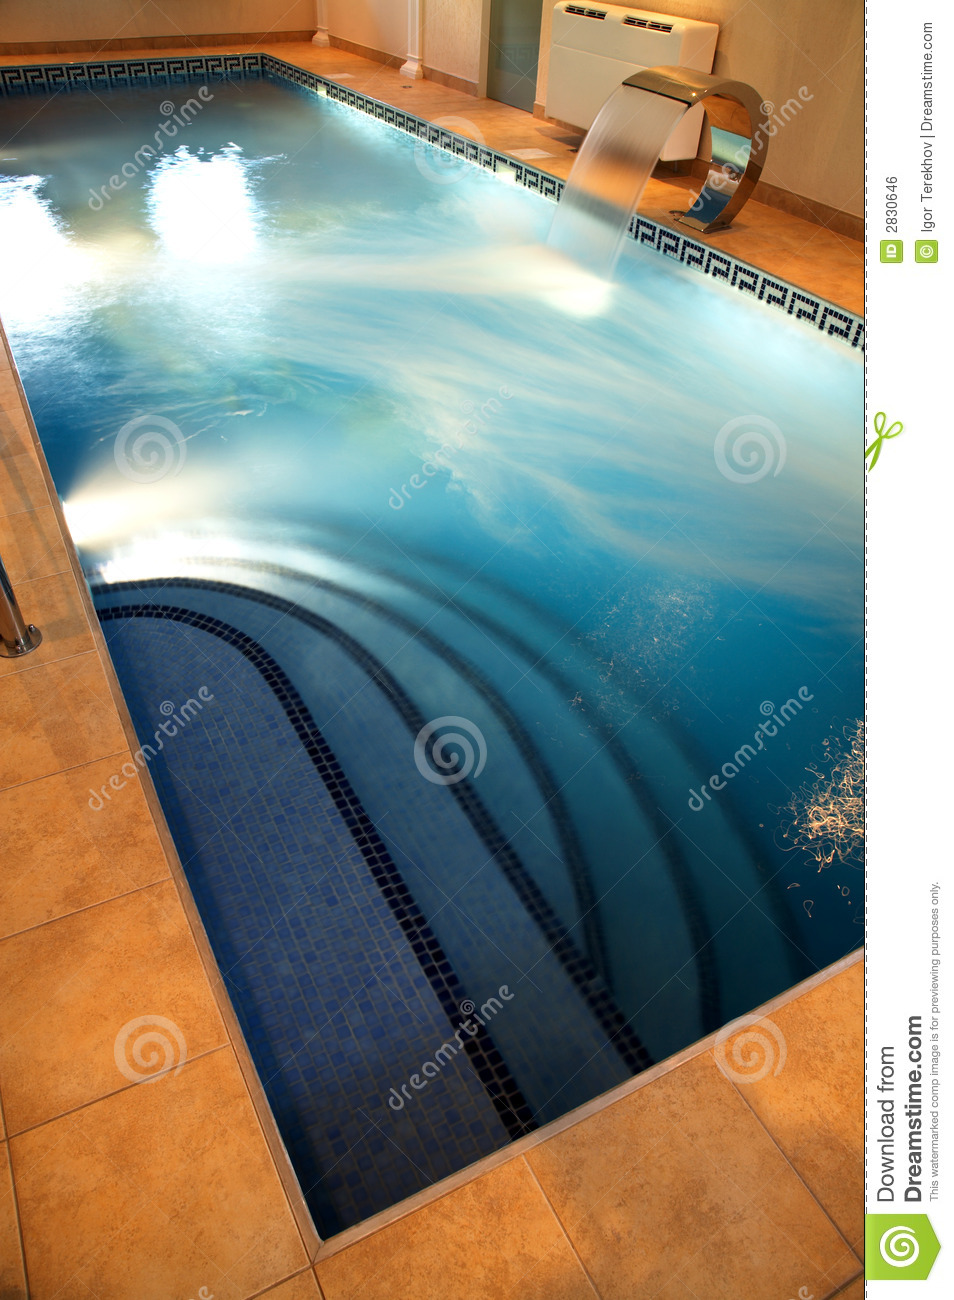 Pool with current water